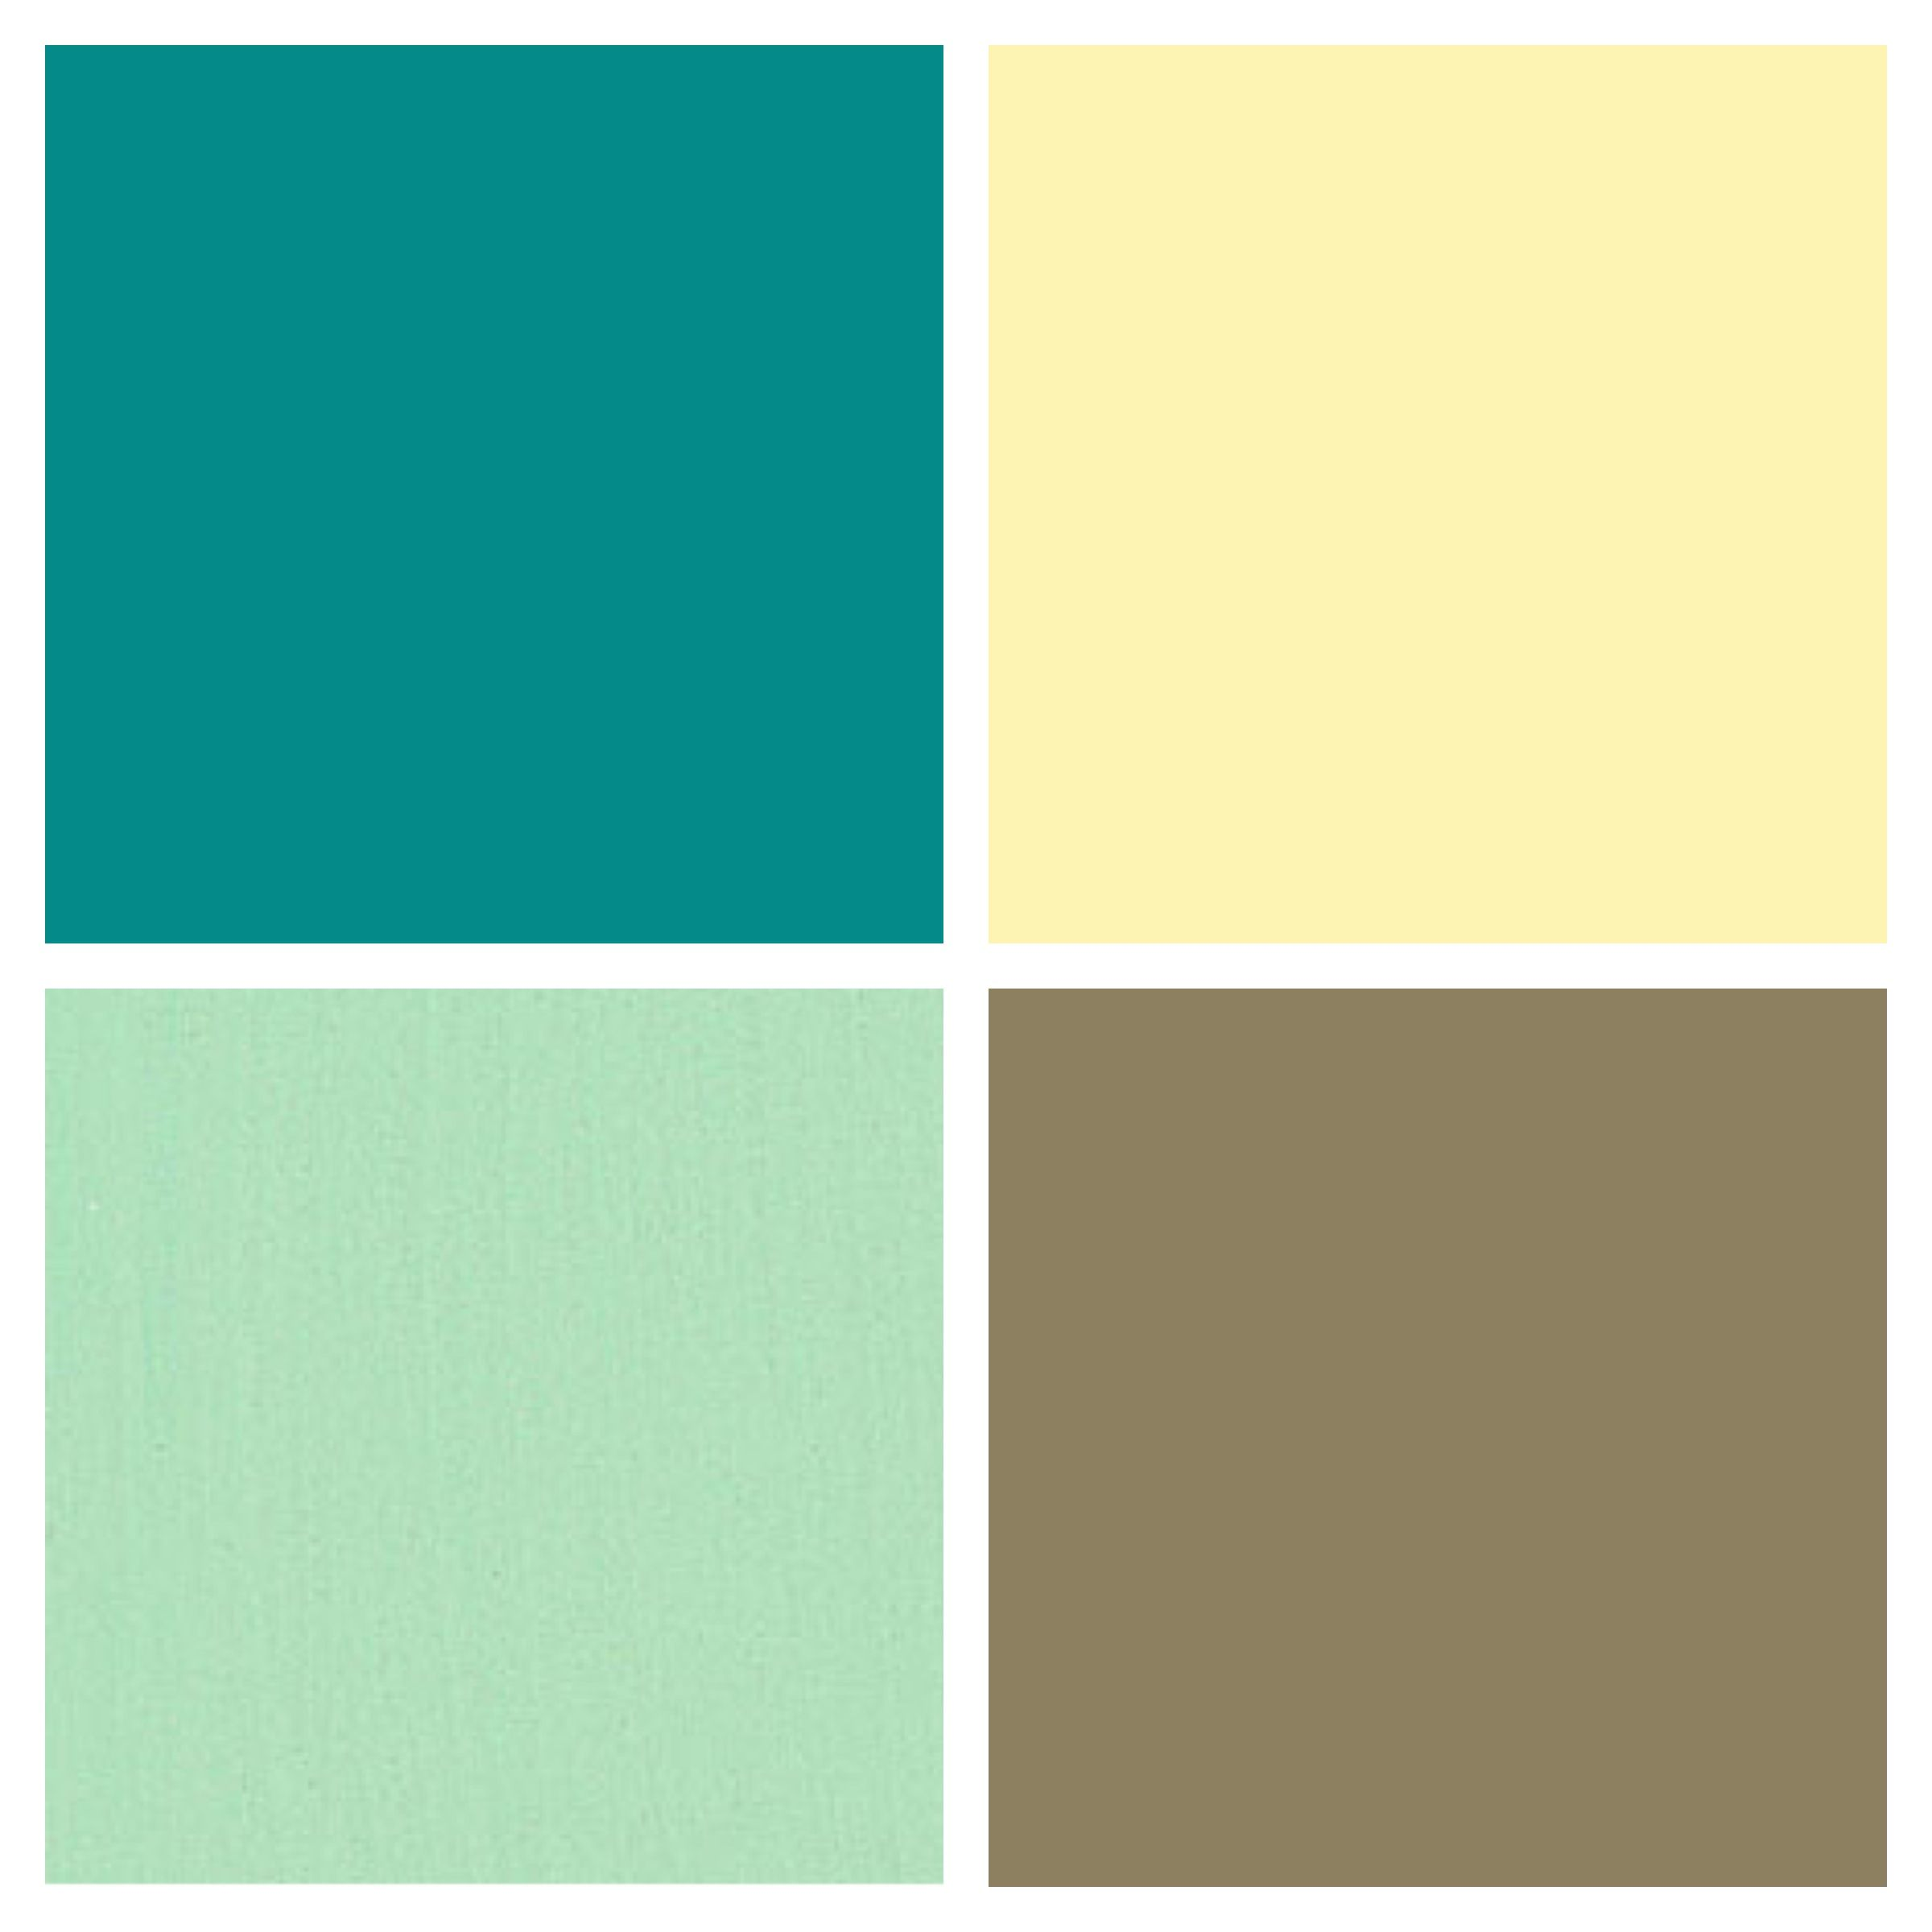 Kitchen color palette- butter / country yellow, mint / seafoam green, tan /